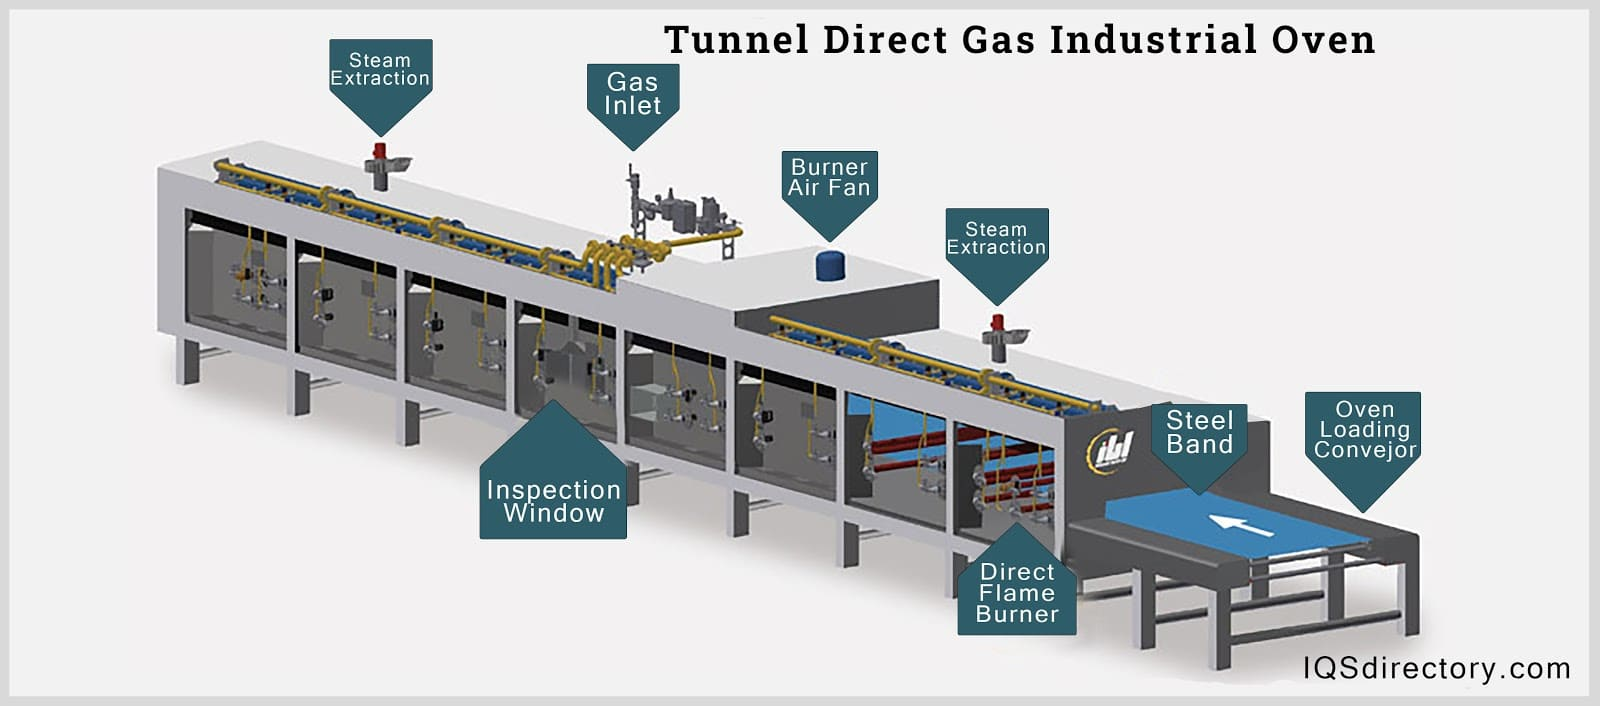 Tunnel Direct Gas Industrial Oven